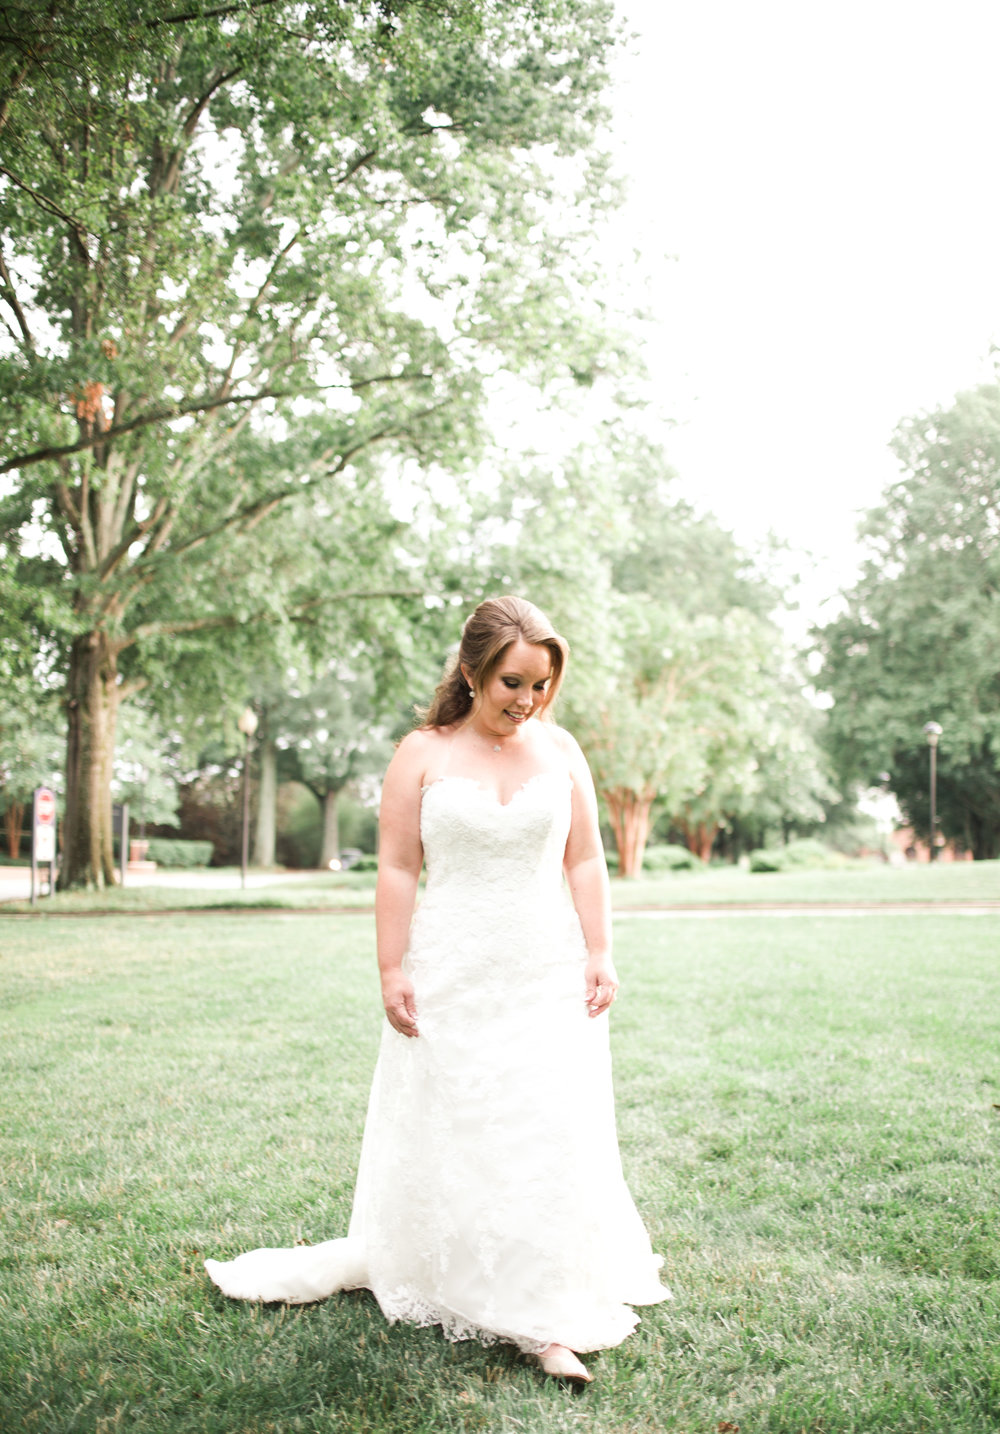 gabbie_bridal_poured_out_photography-23.jpg